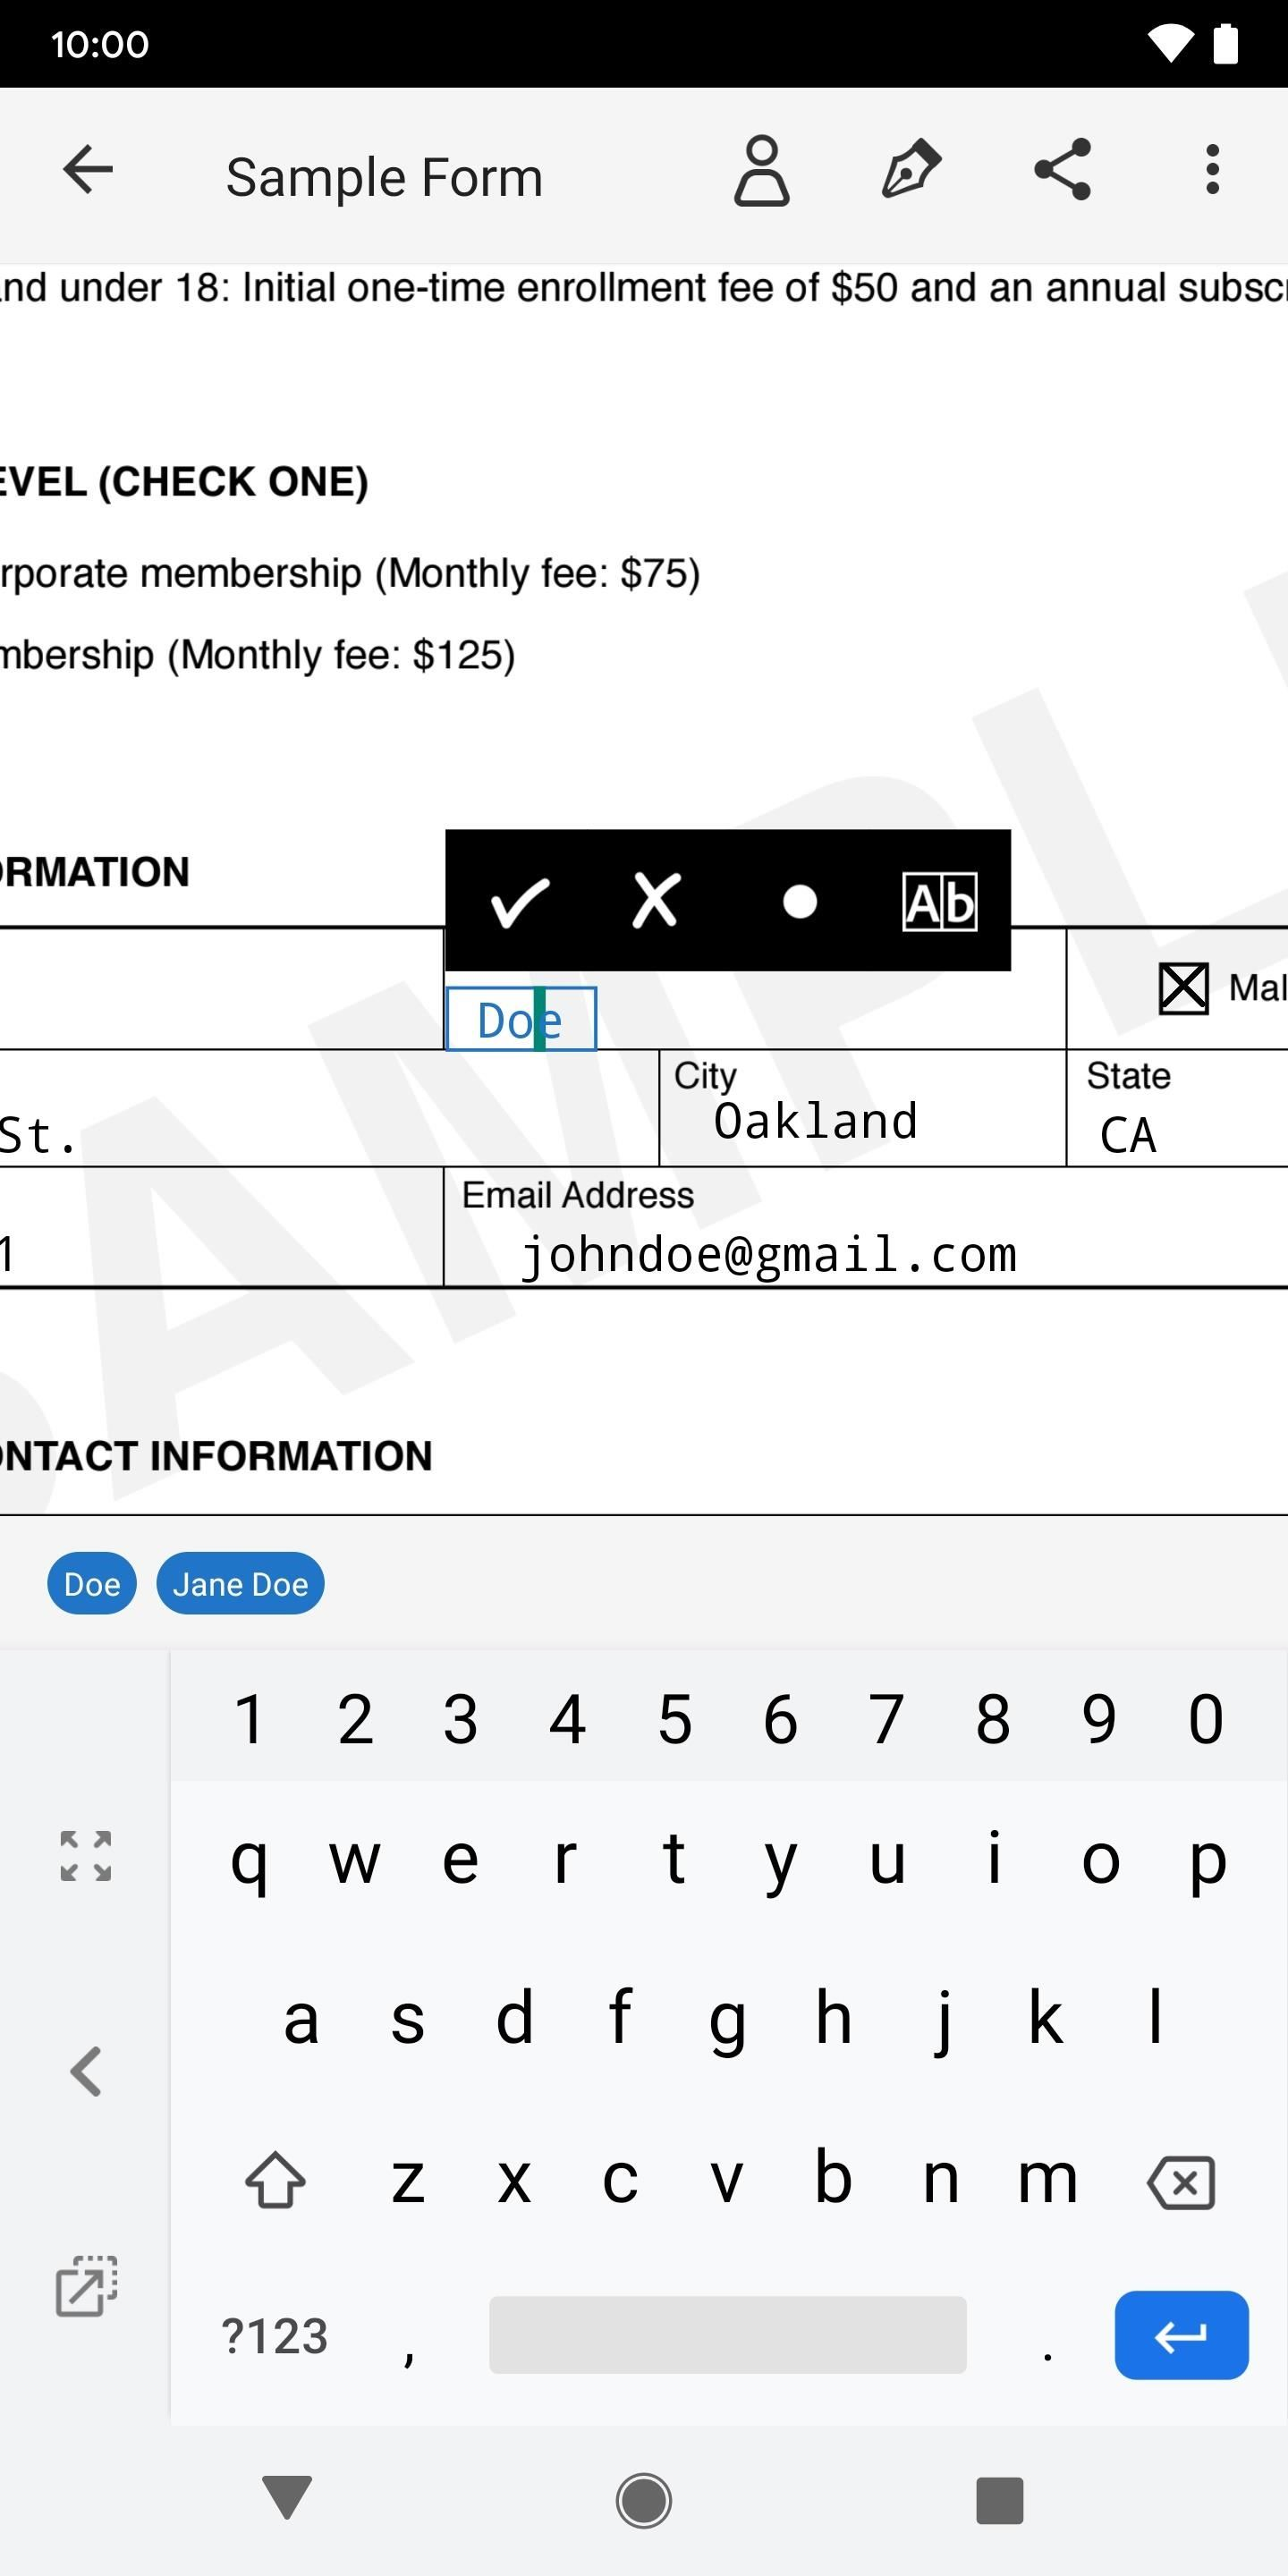 Use Adobe to electronically fill in and sign important forms on Android or iOS